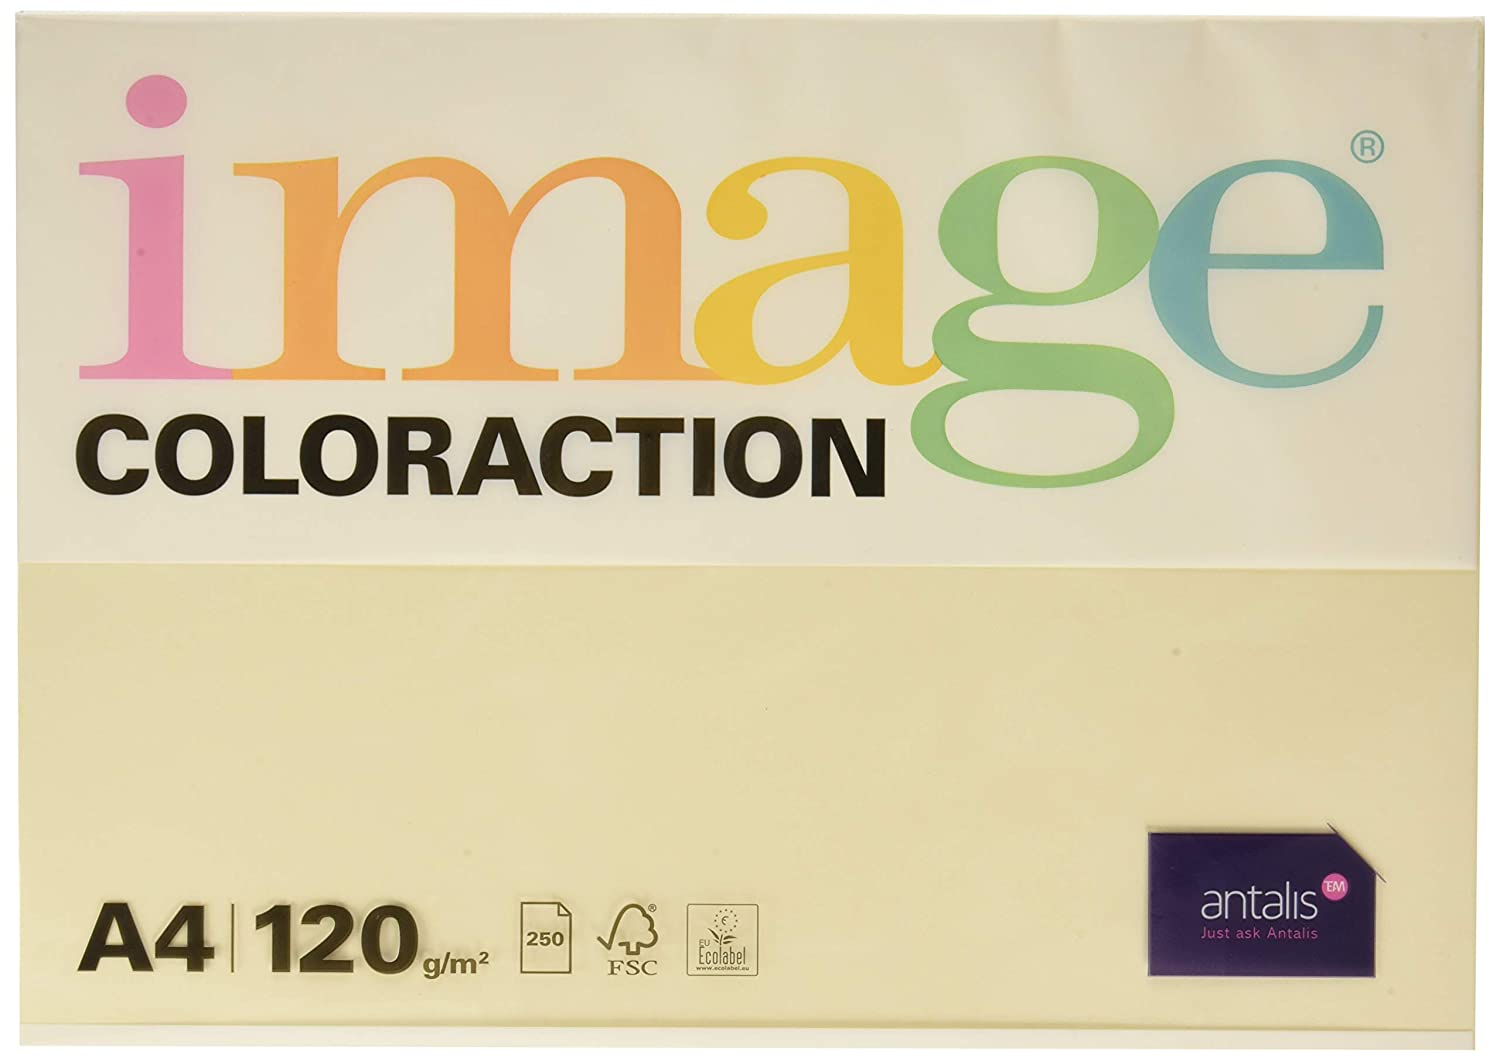 Coloraction Antalis 838A 120S 50-Carta per fotocopie, 250 fogli in formato DIN A4, 120 g/m², Dune, colore: panna